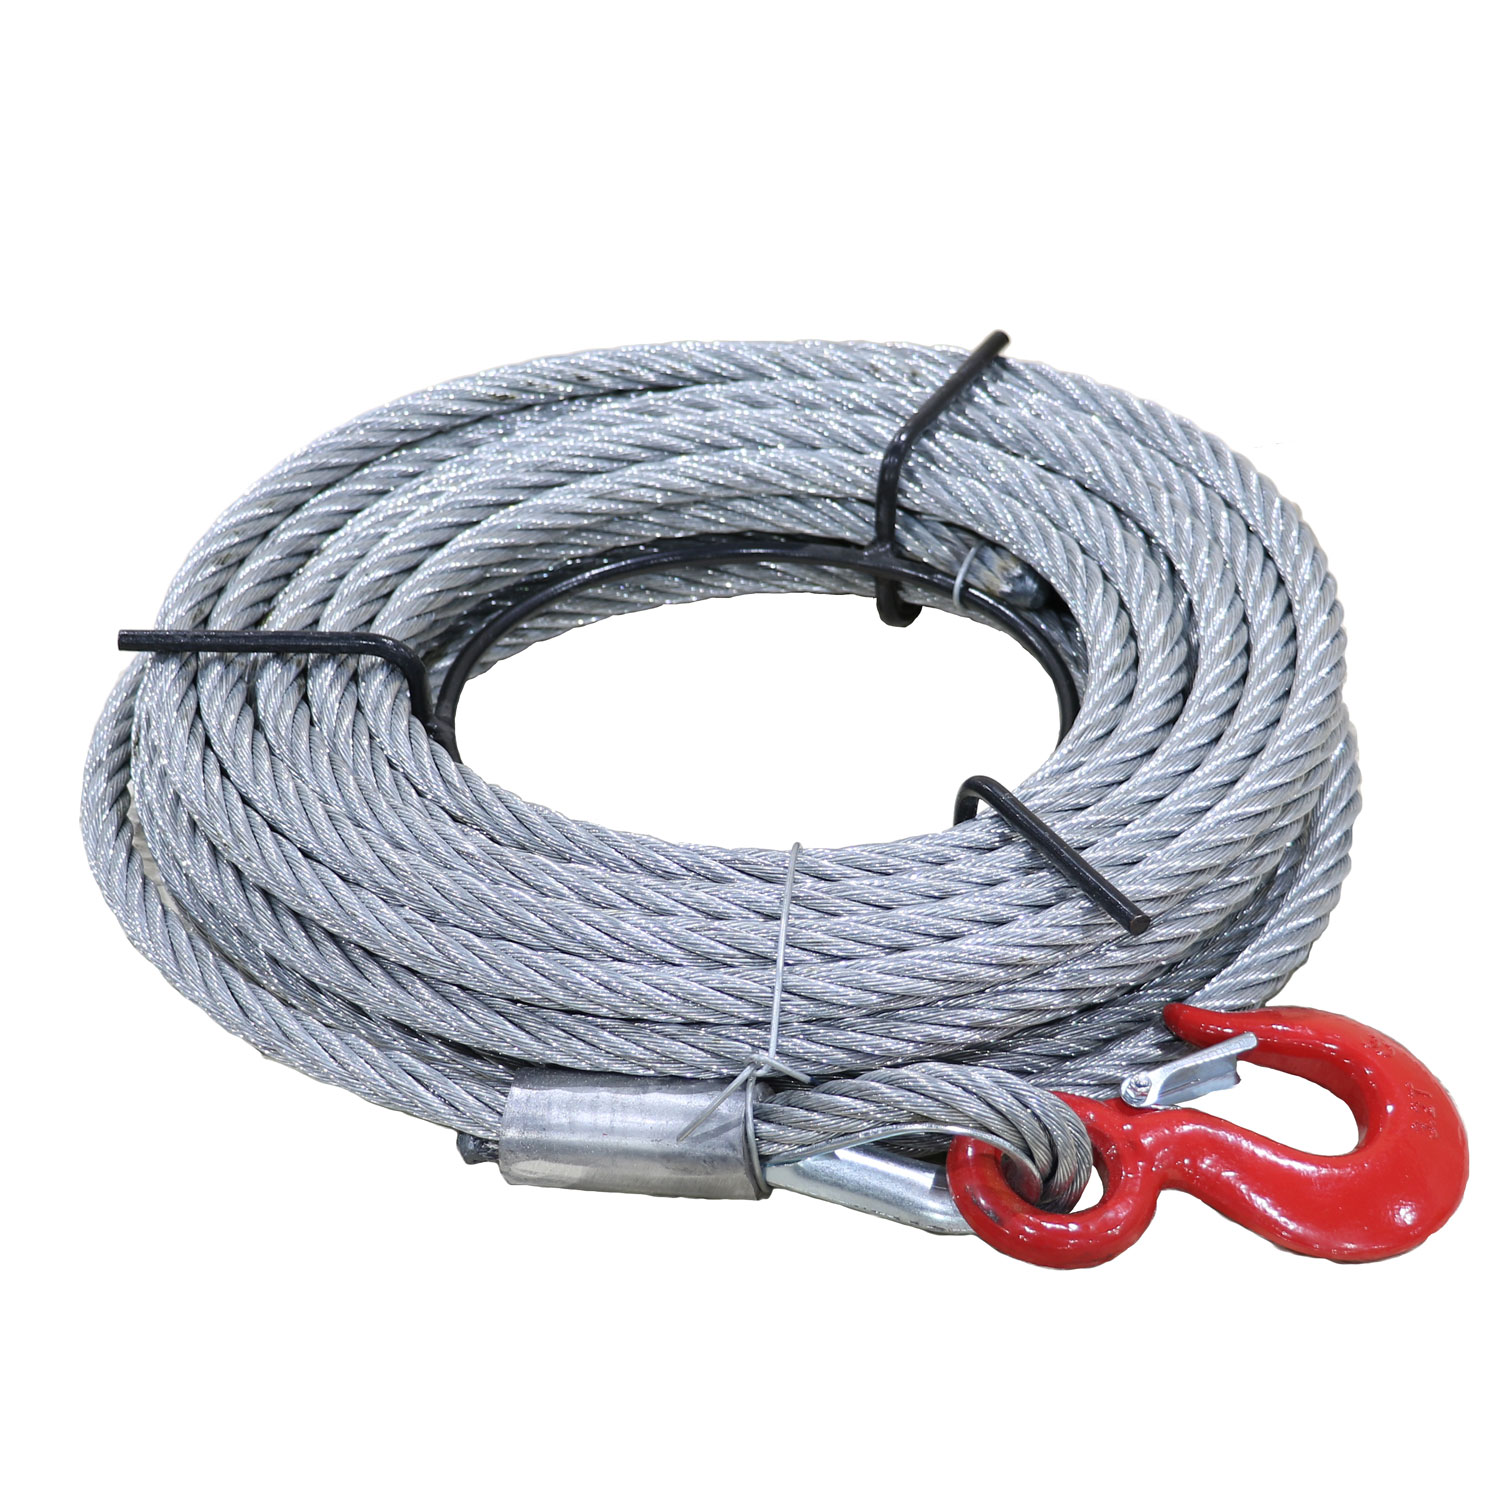 Replacement Cable for 7054 lbs Capacity, Tyler Tool Aluminum Wire ...